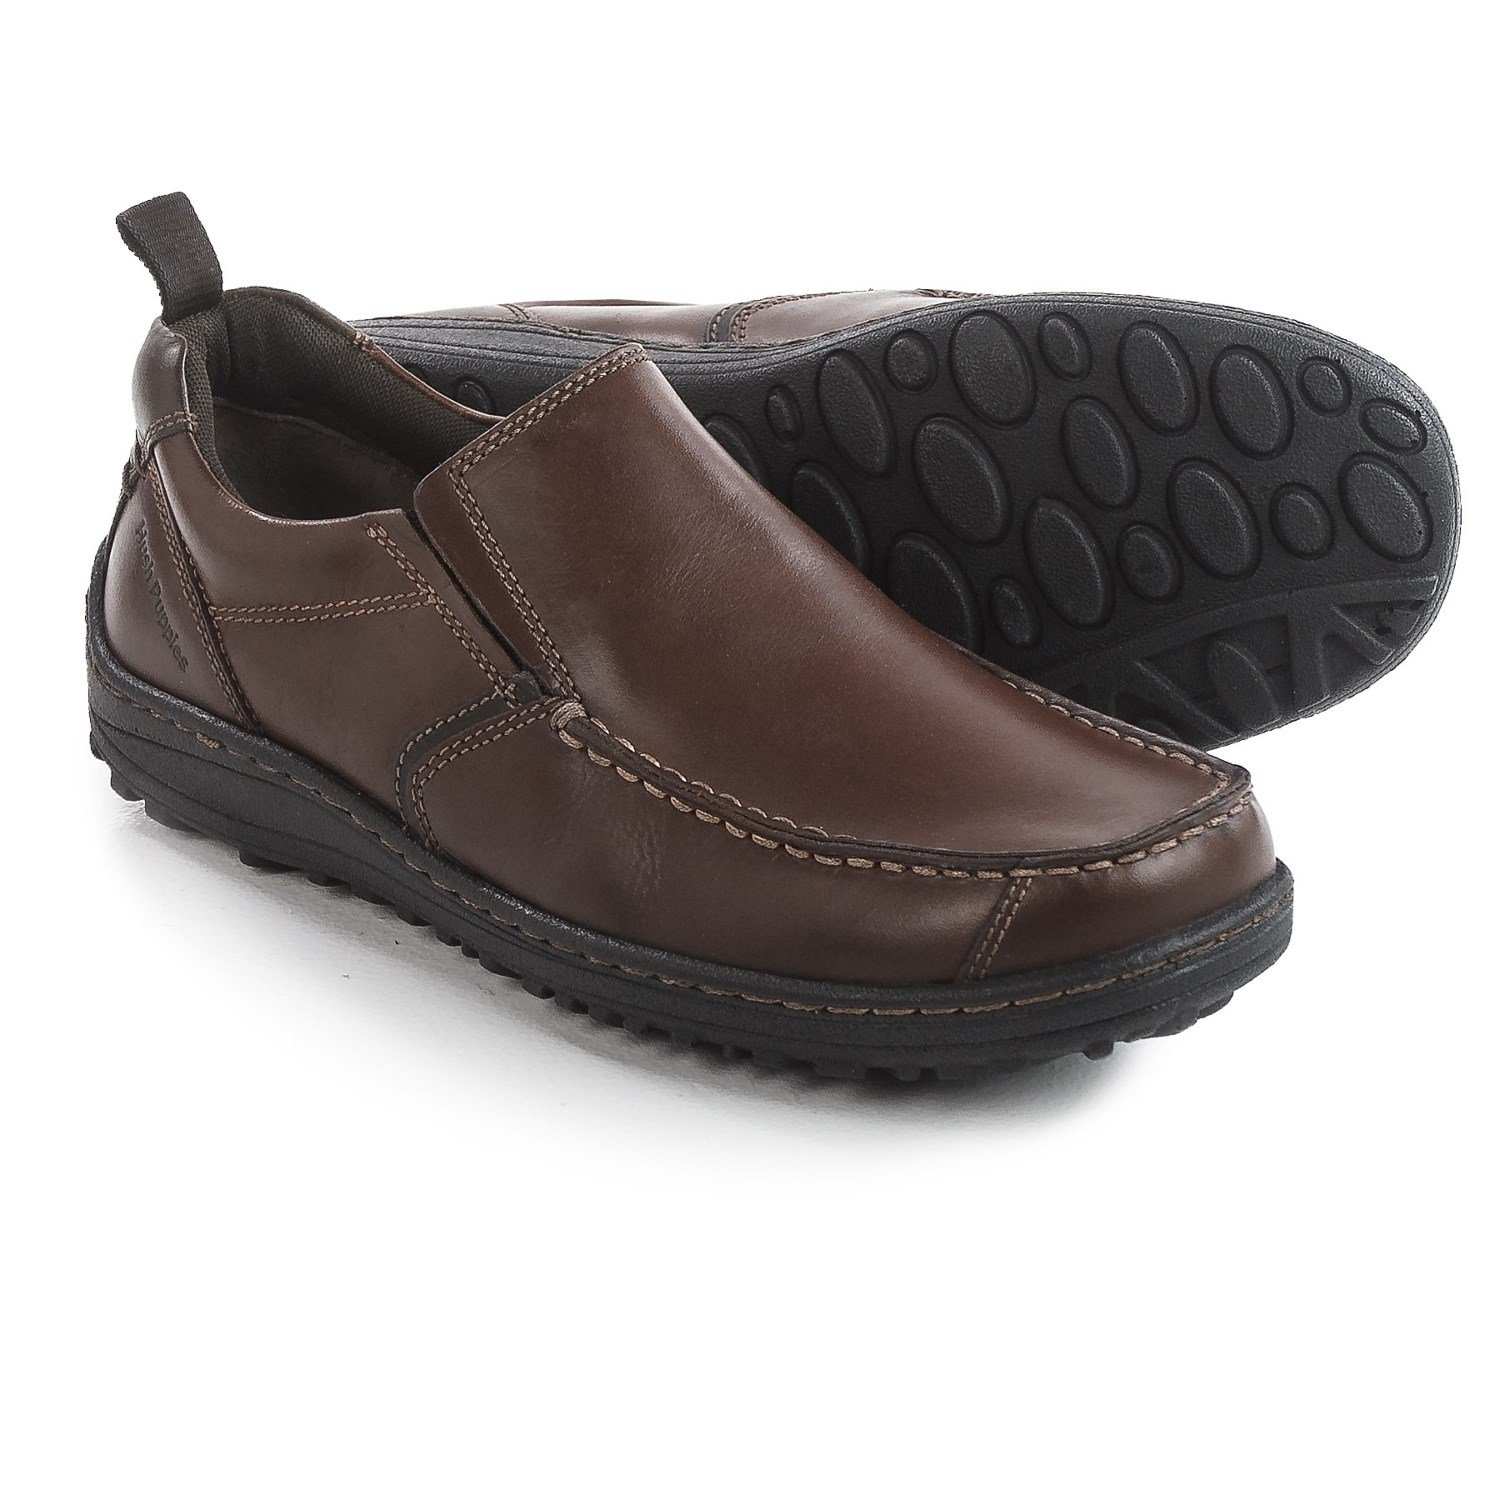 Water Proof Shoes Men